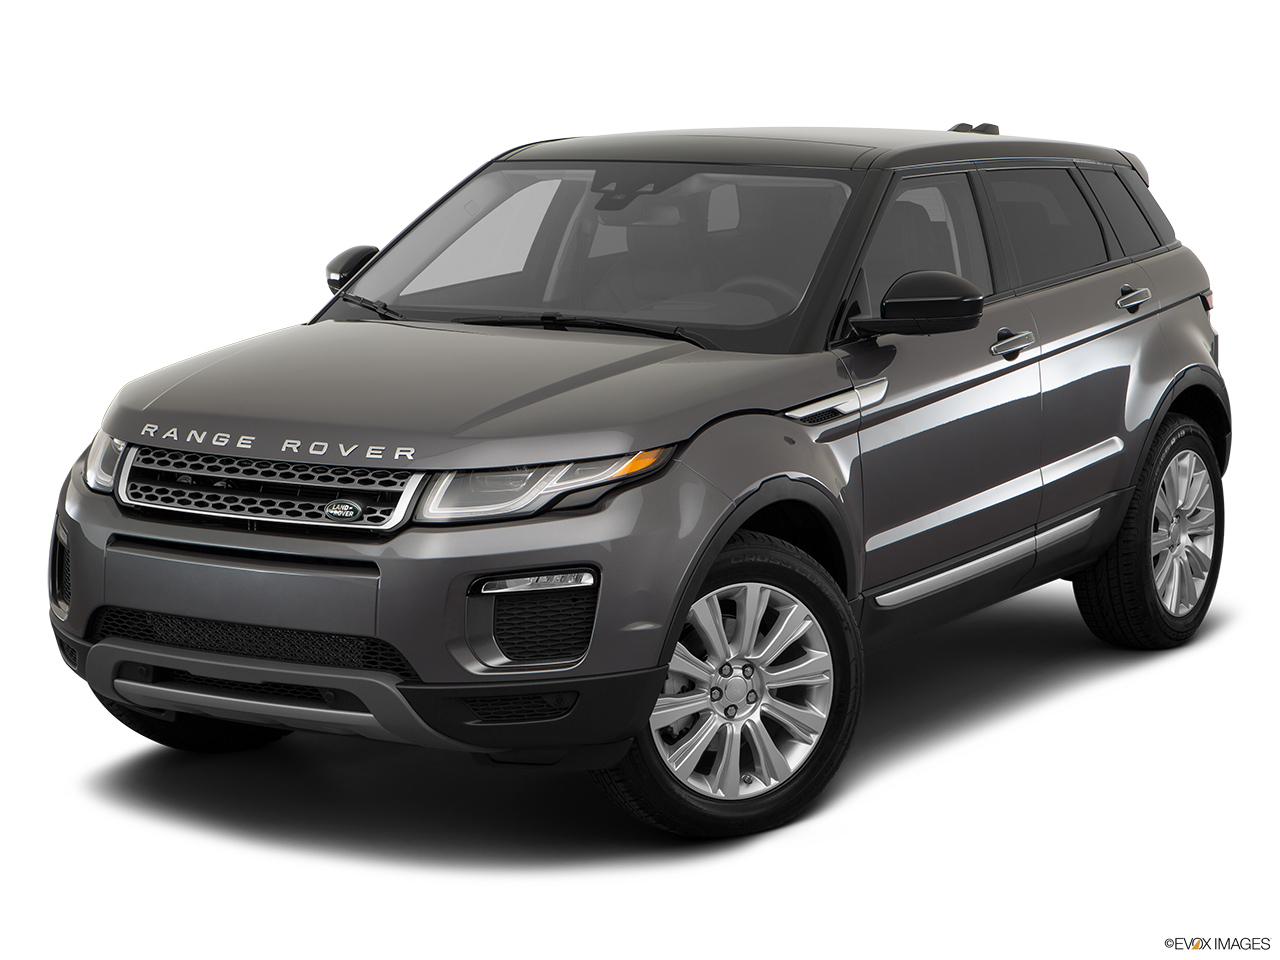 2017 land rover range rover evoque prices in saudi arabia gulf specs reviews for riyadh. Black Bedroom Furniture Sets. Home Design Ideas